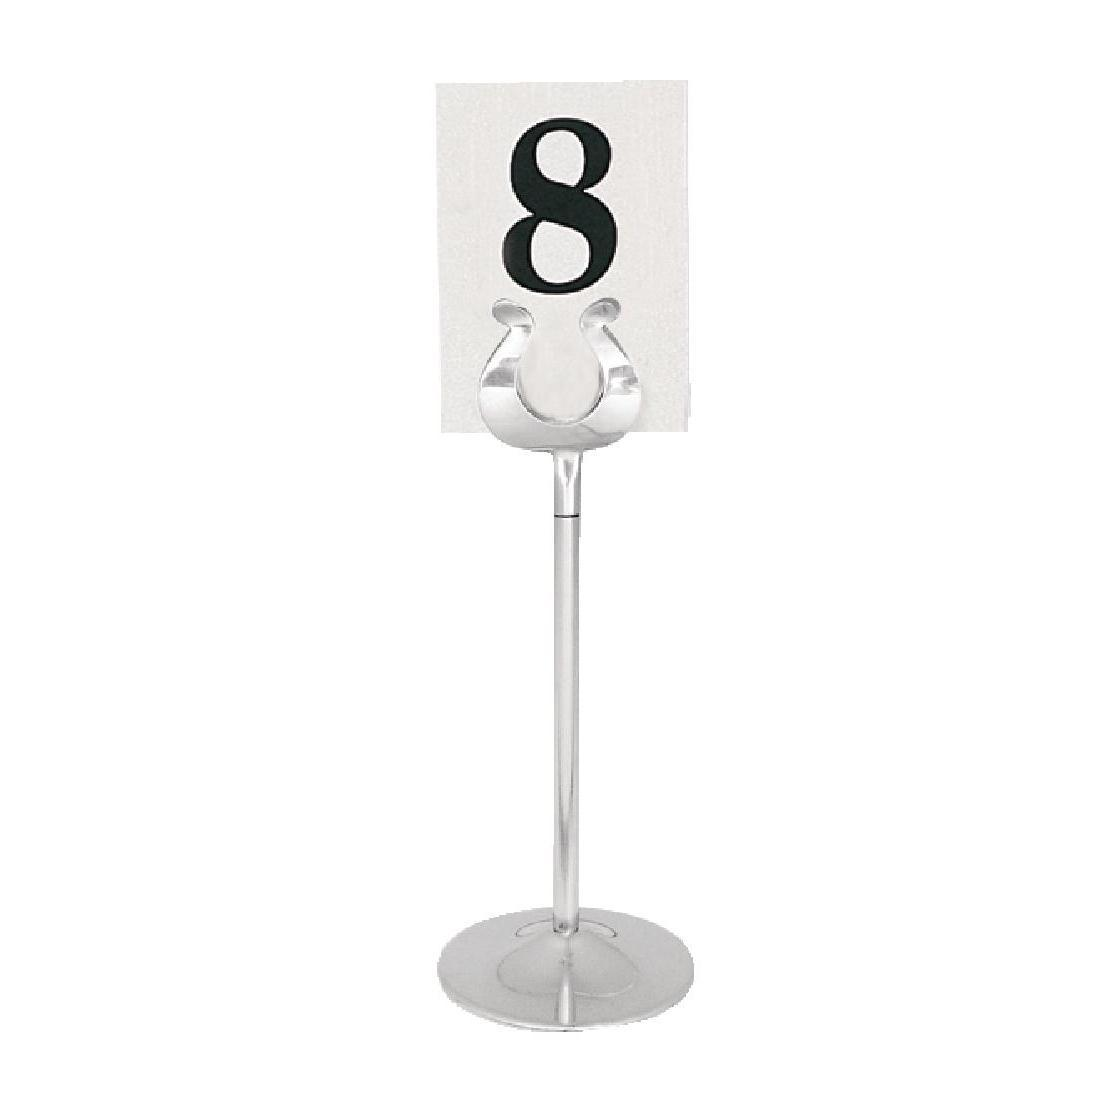 Stainless Steel Table Number Stand 205mm